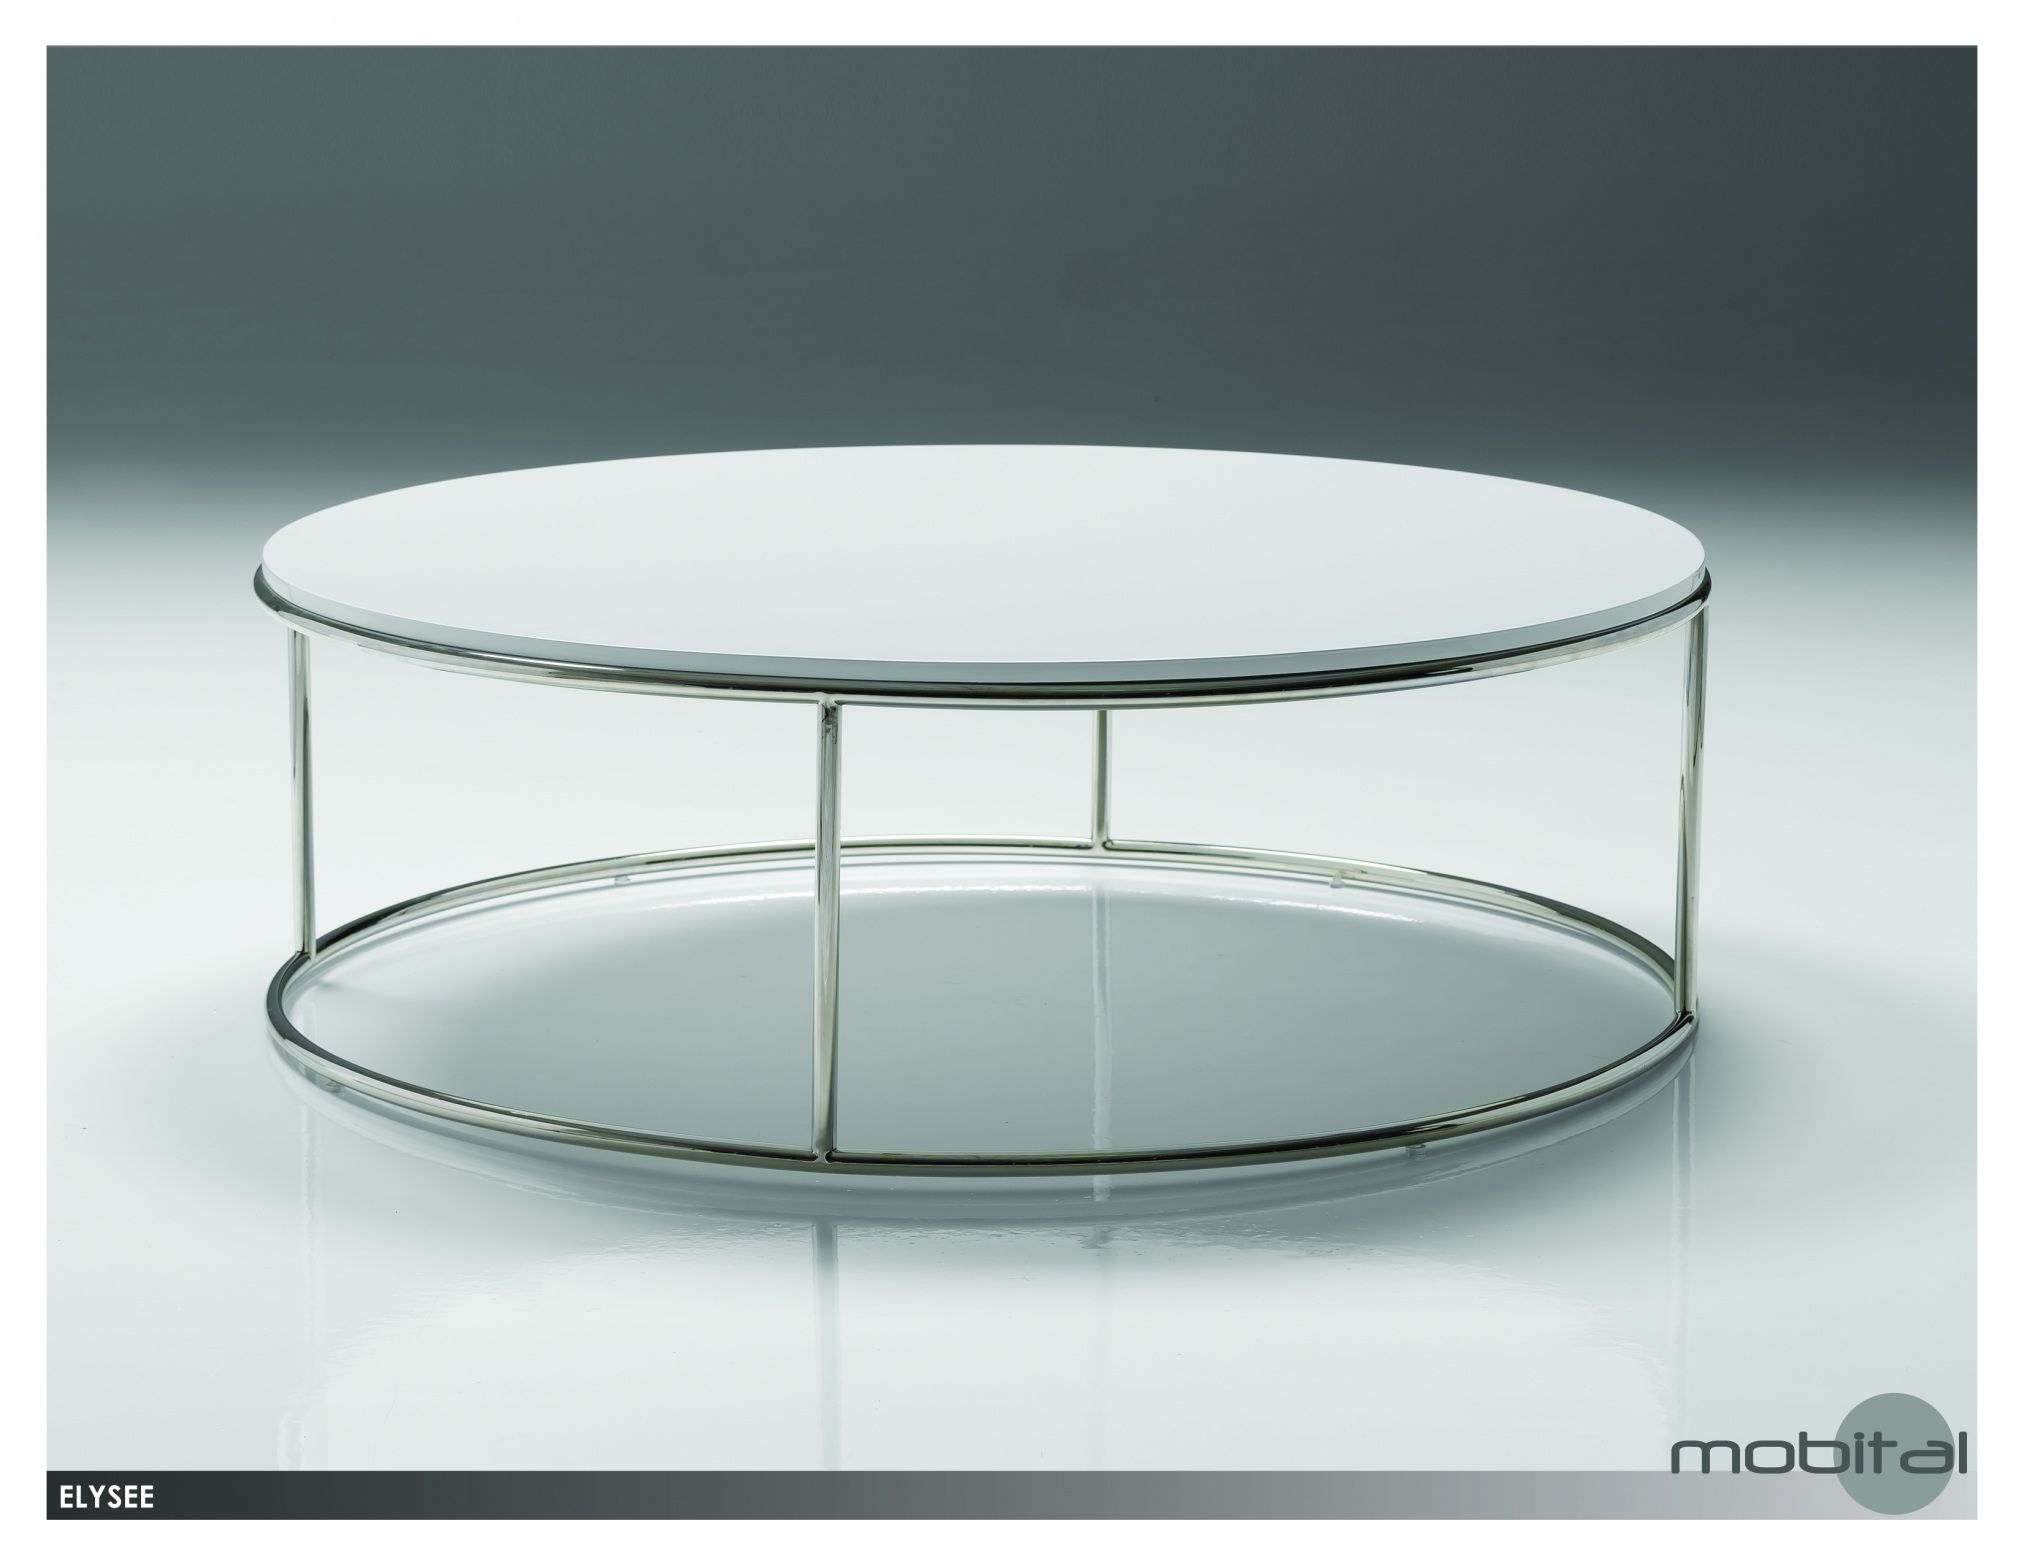 20 Round Stainless Steel Coffee Table Home Office Desk Furniture Check More At Http